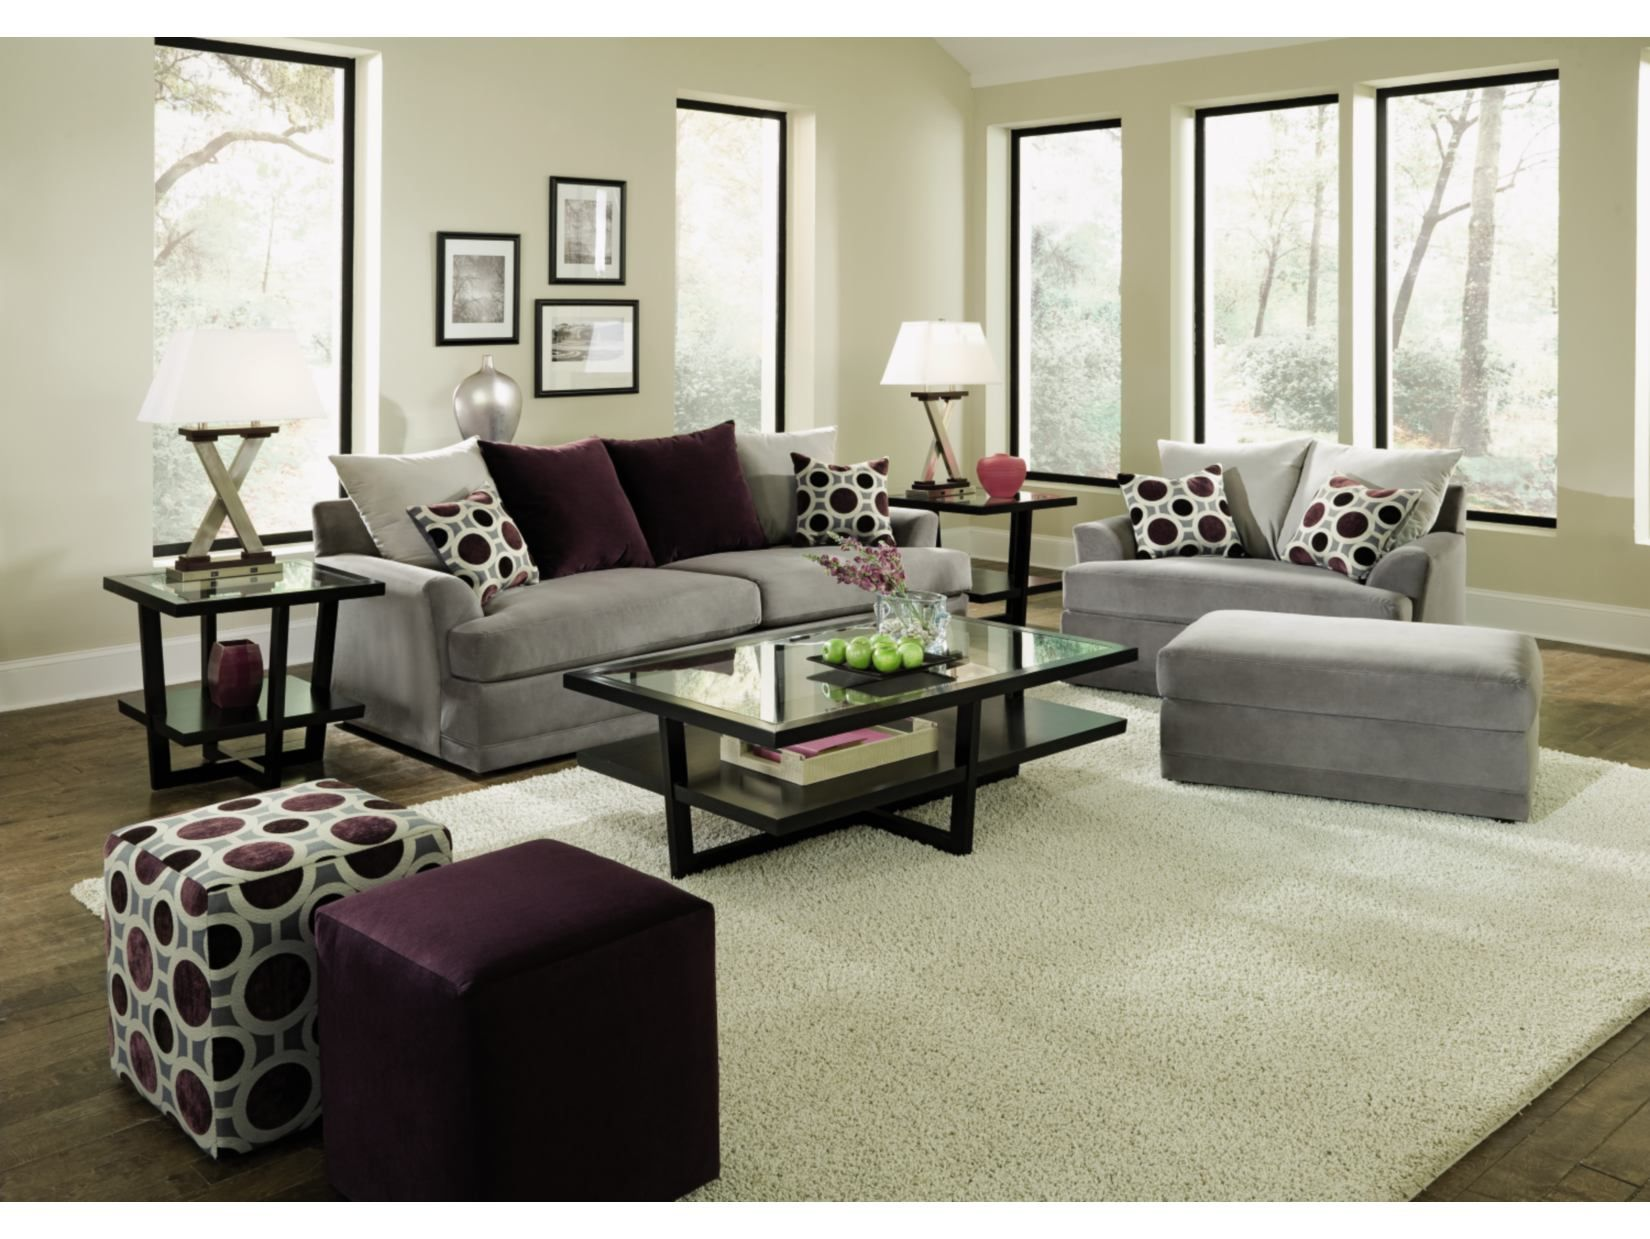 Living Room Sets Value City Furniture radiance pewter sofa - value city furniture grey sofa and love